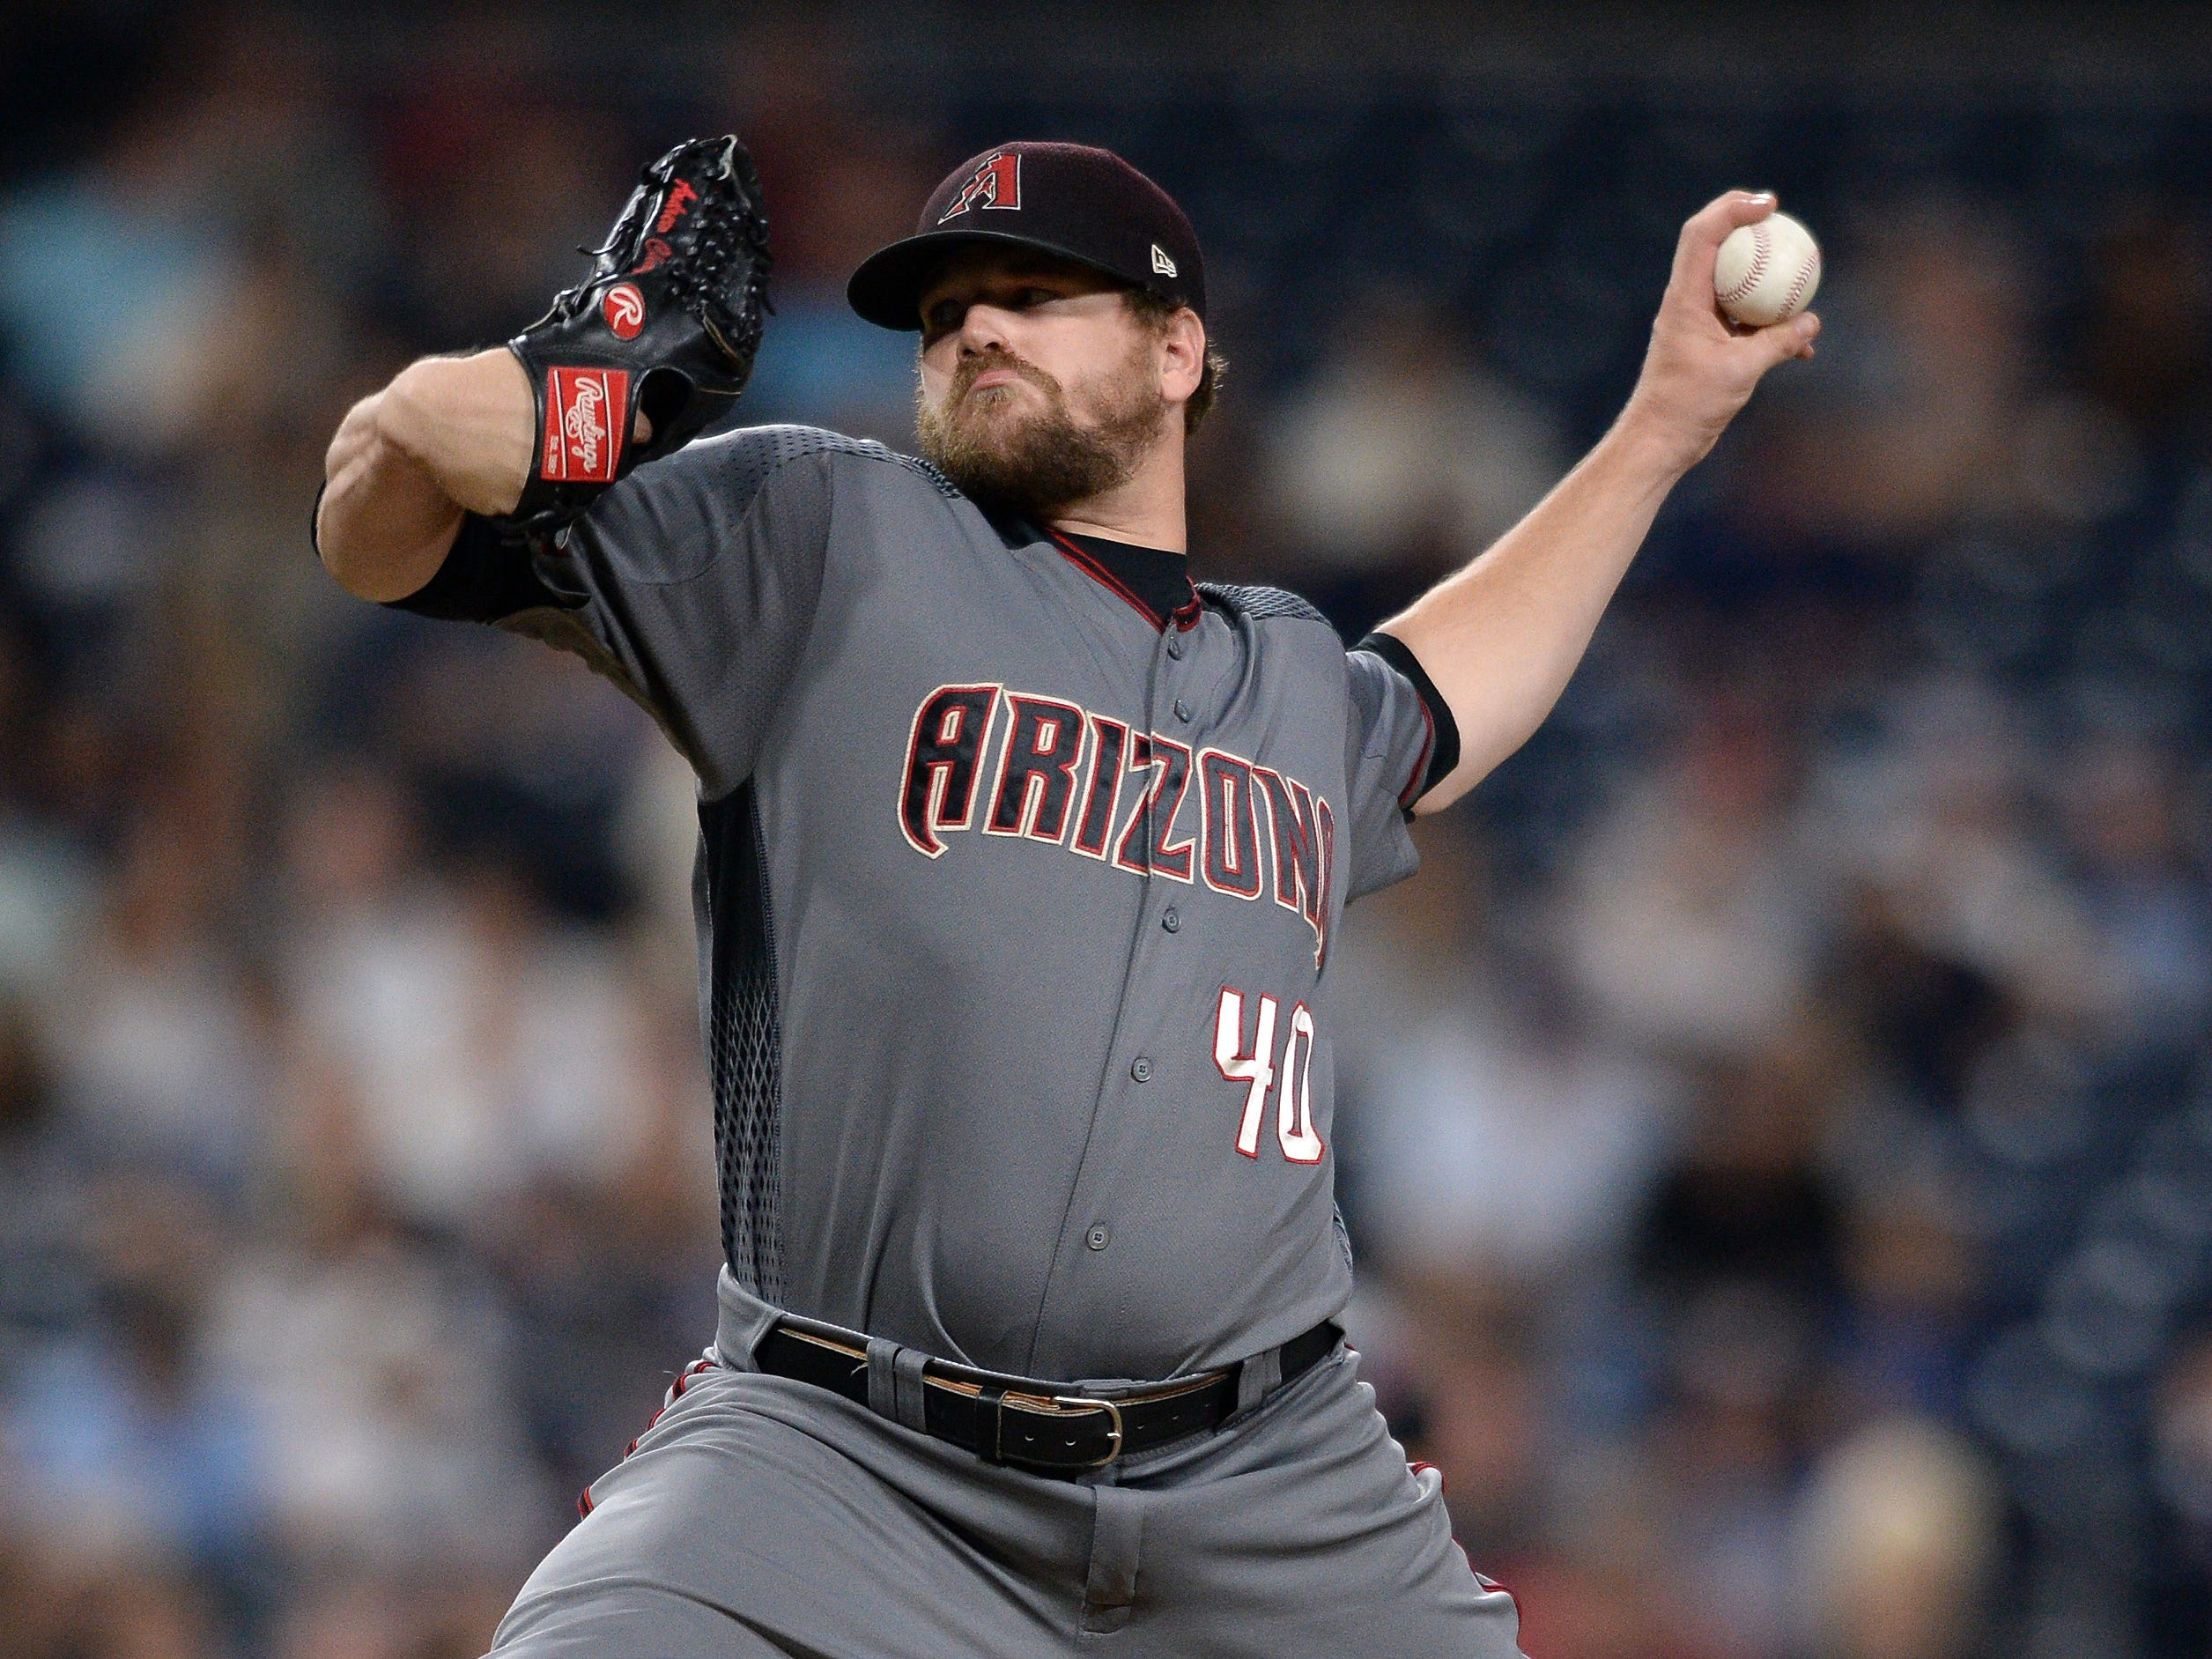 Aug 18, 2018: Arizona Diamondbacks relief pitcher Andrew Chafin works against a San Diego Padres batter during the ninth inning at Petco Park.